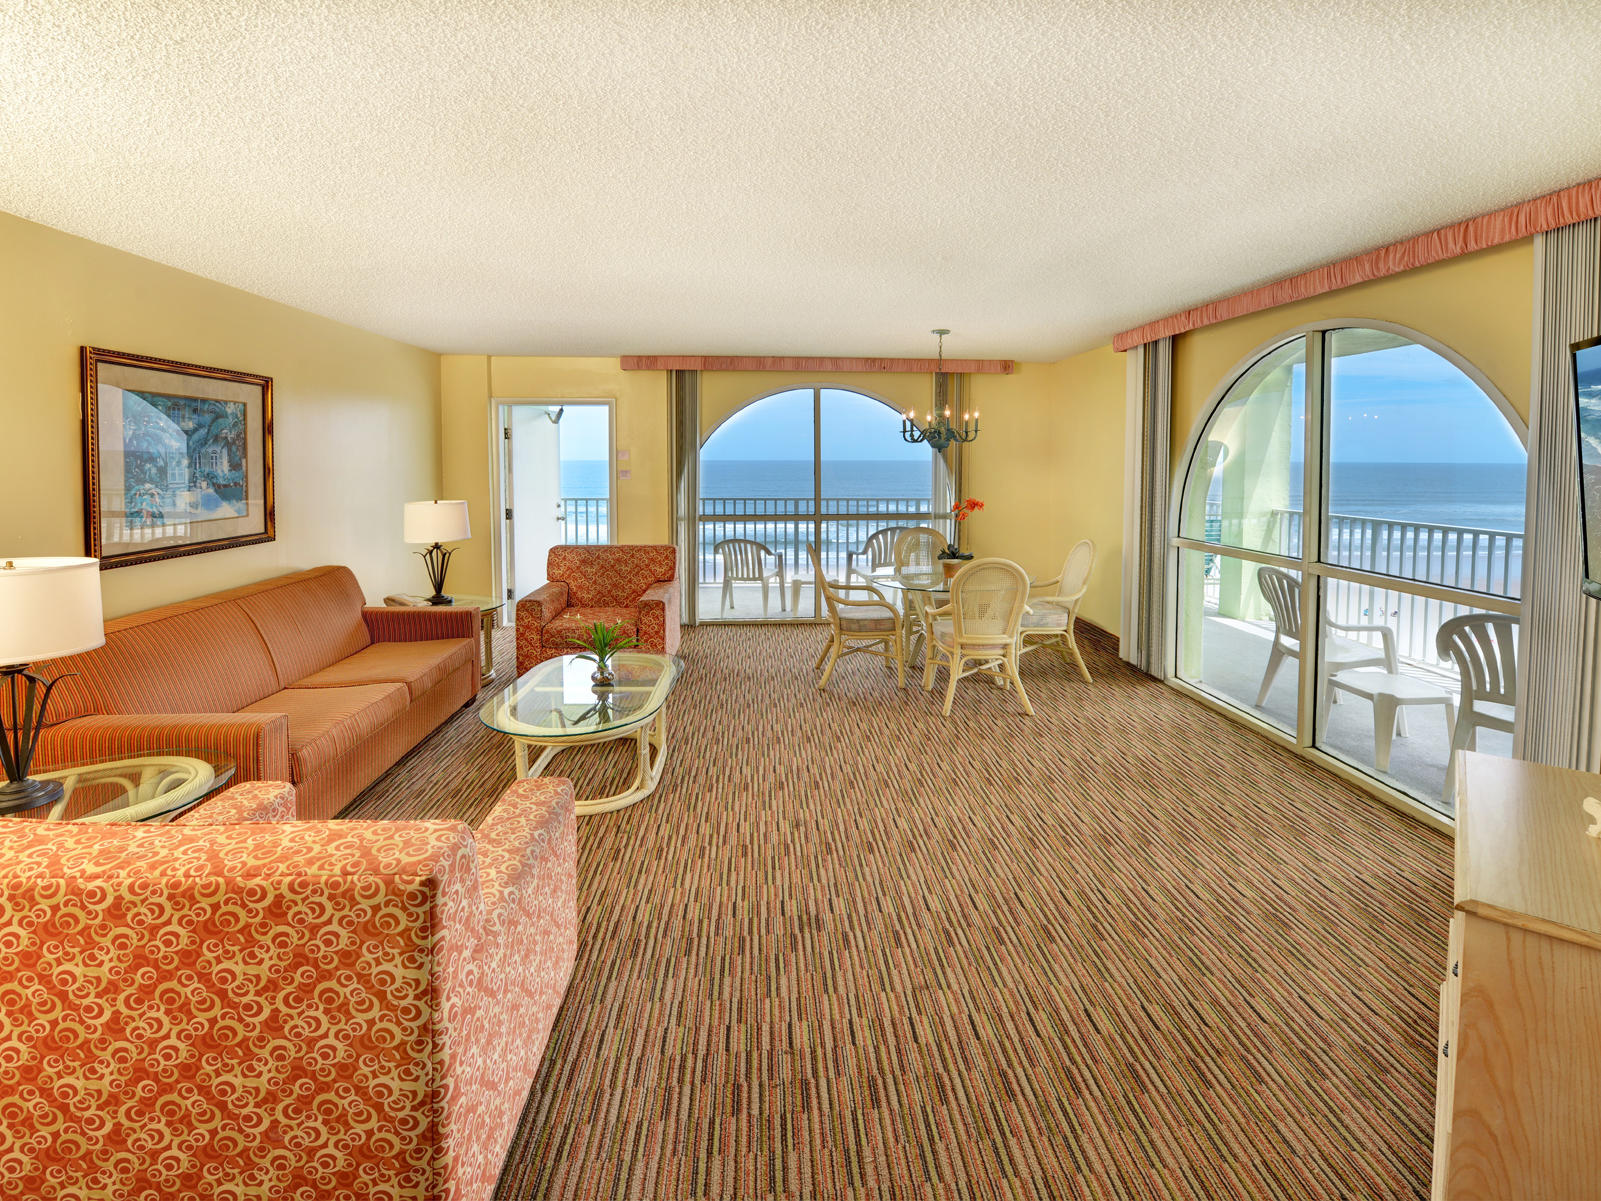 Oceanview hotel room with broad living space.